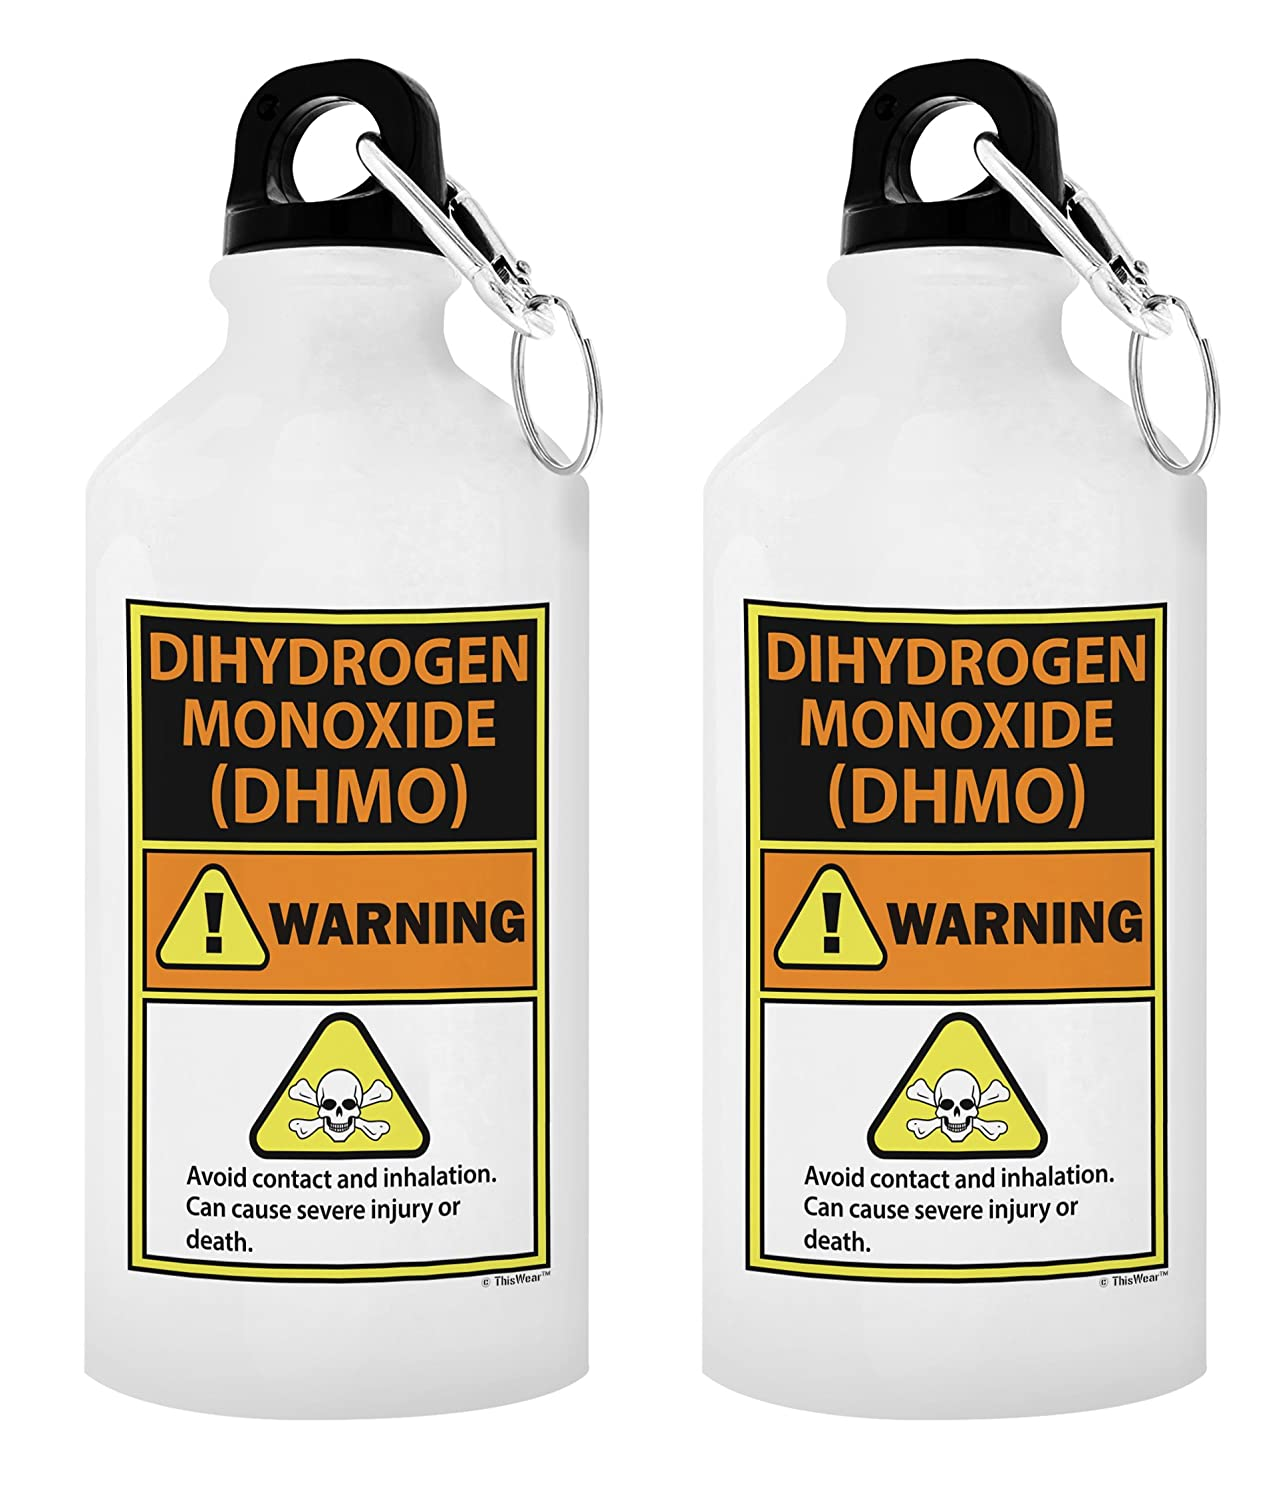 42b320d97a Amazon.com : ThisWear Funny Science Gifts Dihydrogen Monoxide Warning Label  H20 Pun Periodic Table Gifts for Science Nerds Gift 20-oz Aluminum Water  Bottle ...